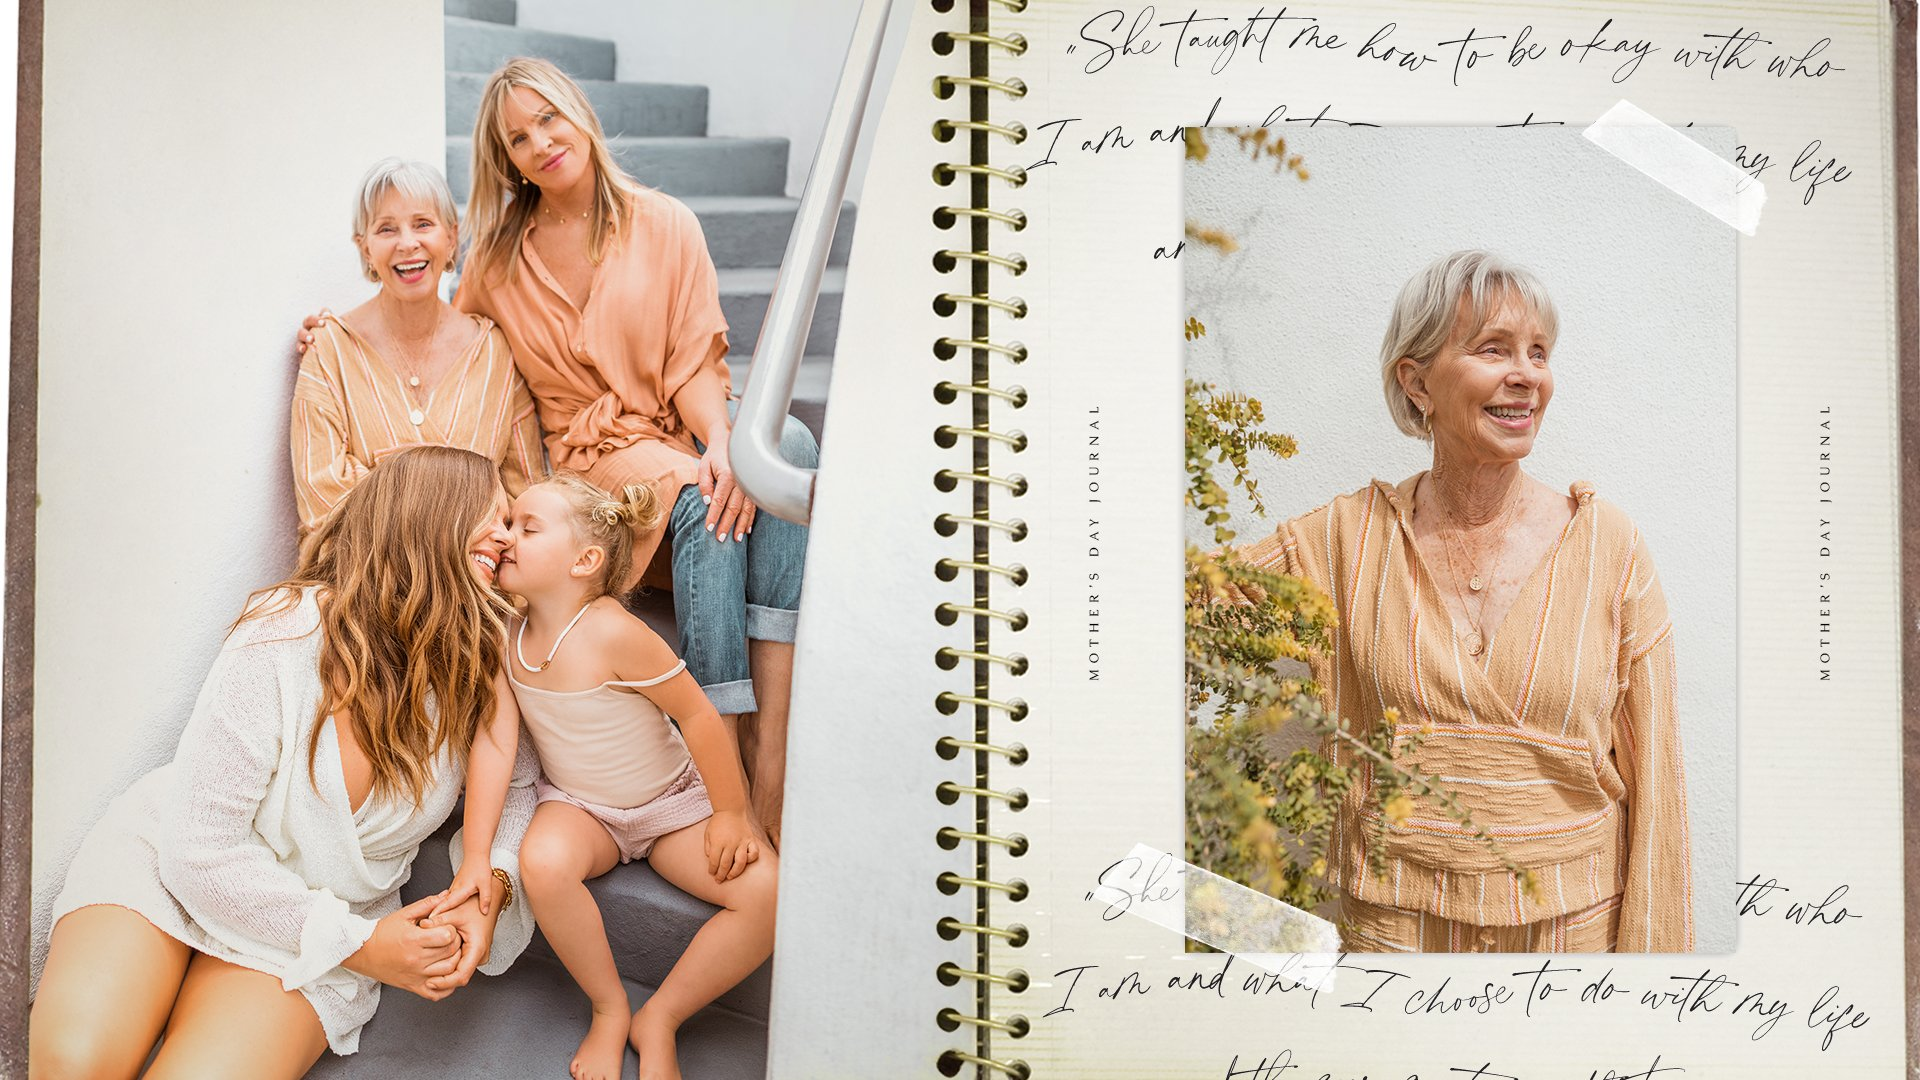 scrapbook with images of women